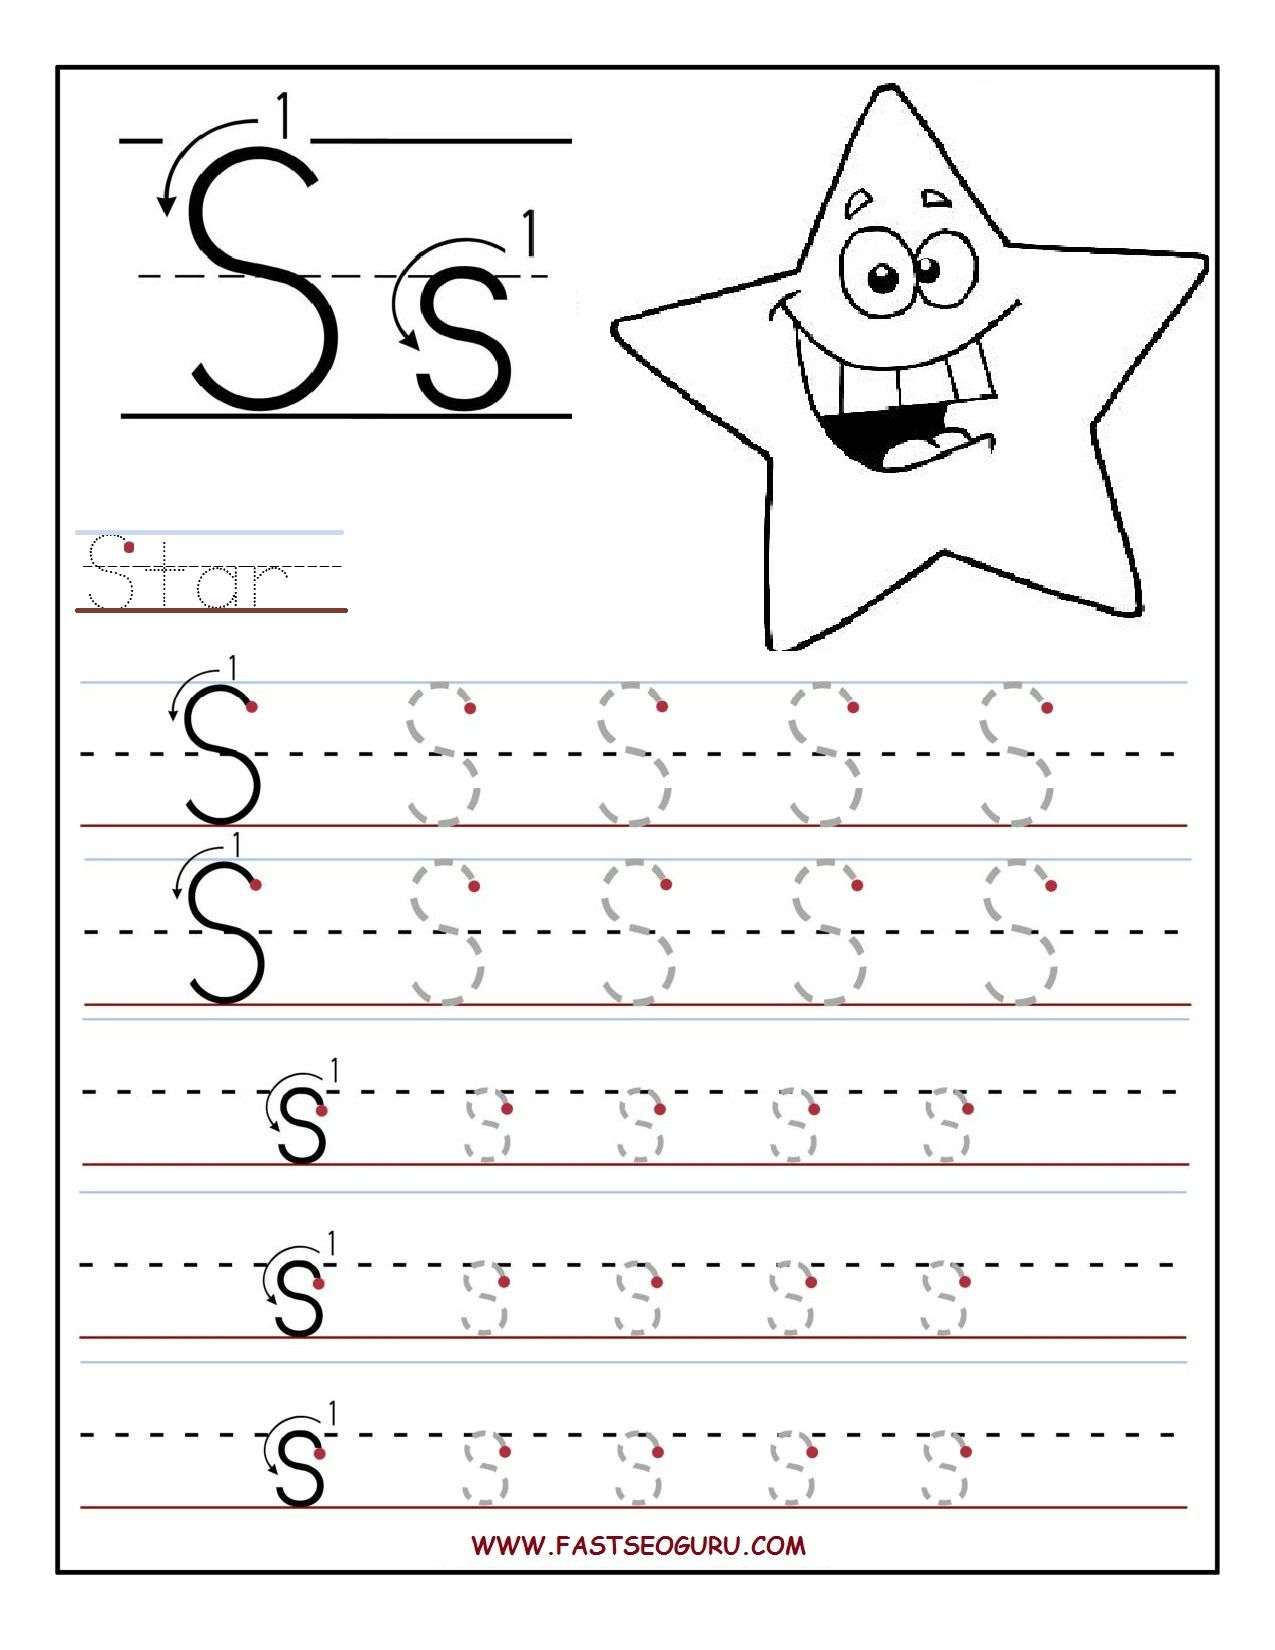 Fastseoguru Files Printable%20Letter%20S%20Tracing with Letter S Worksheets For Pre K